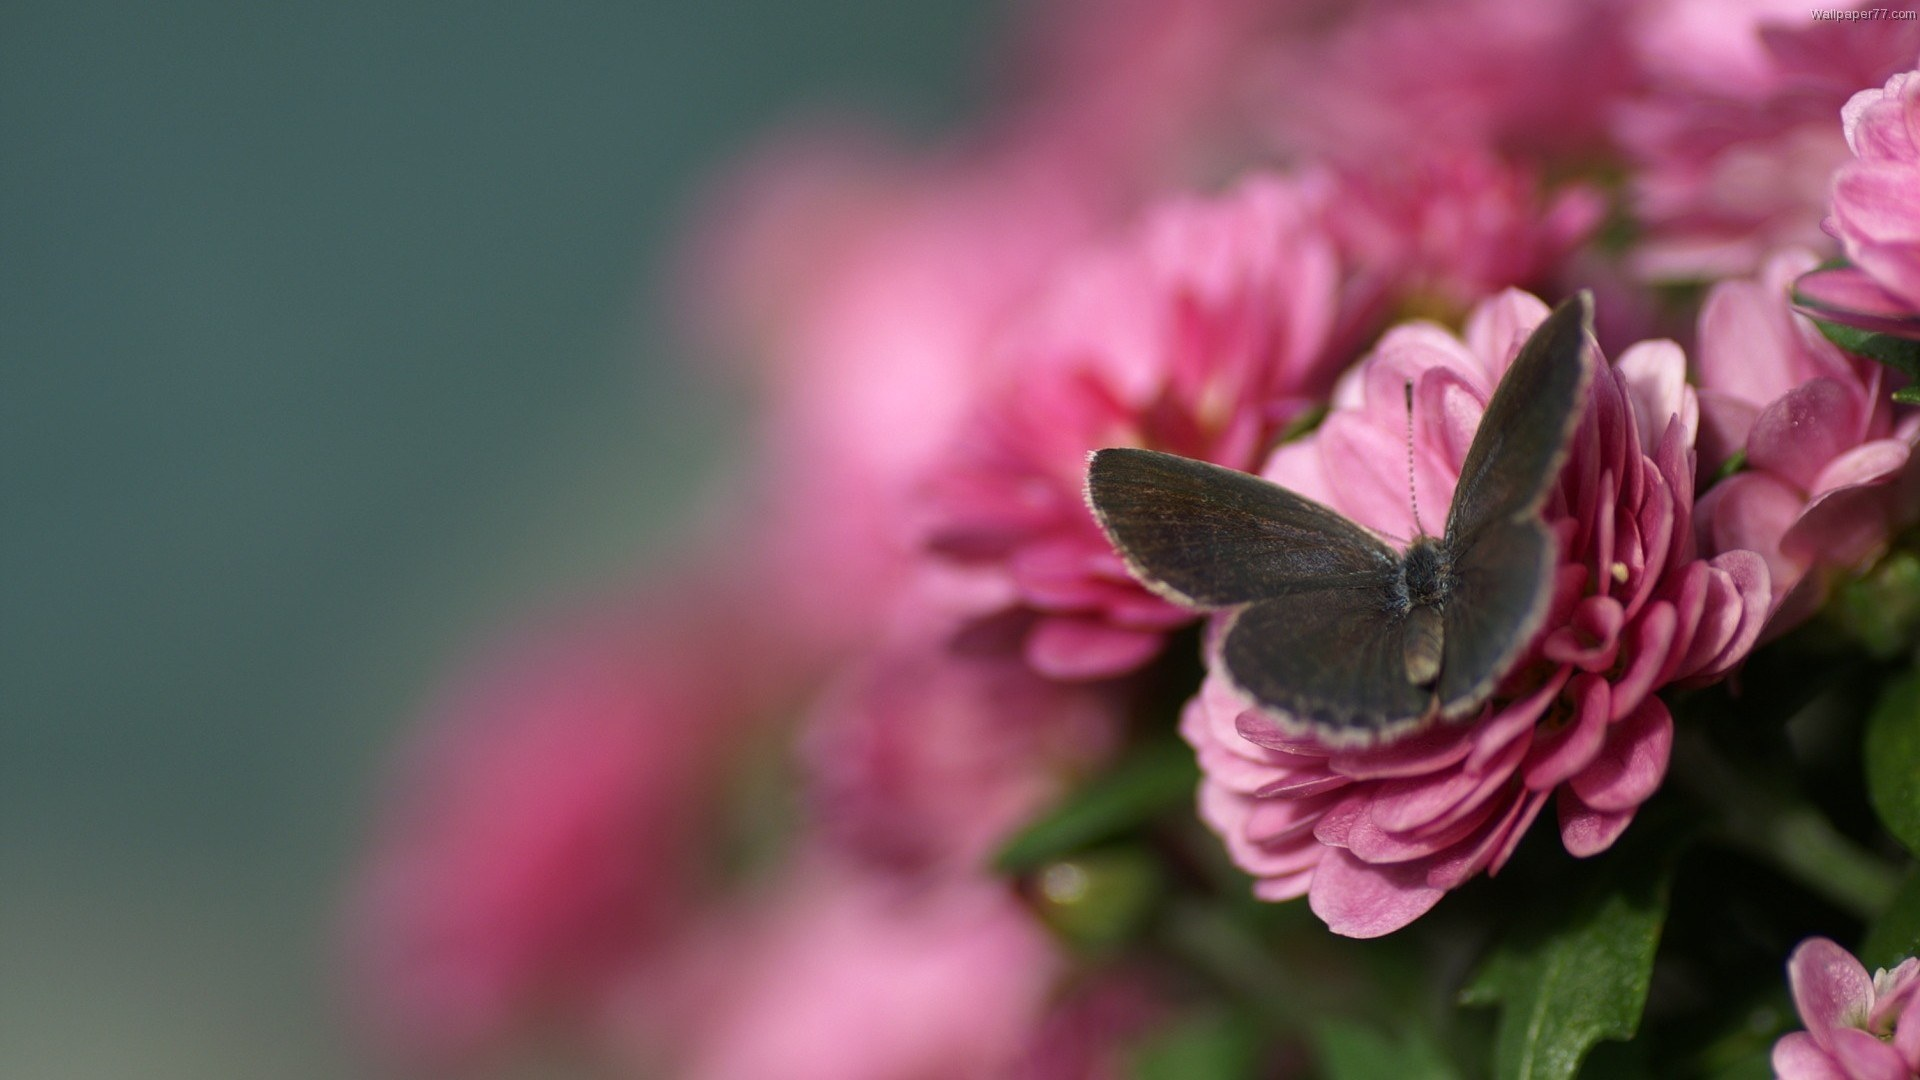 Black-Butterfly-On-Pink-Flower-wallpaper-wp3403283